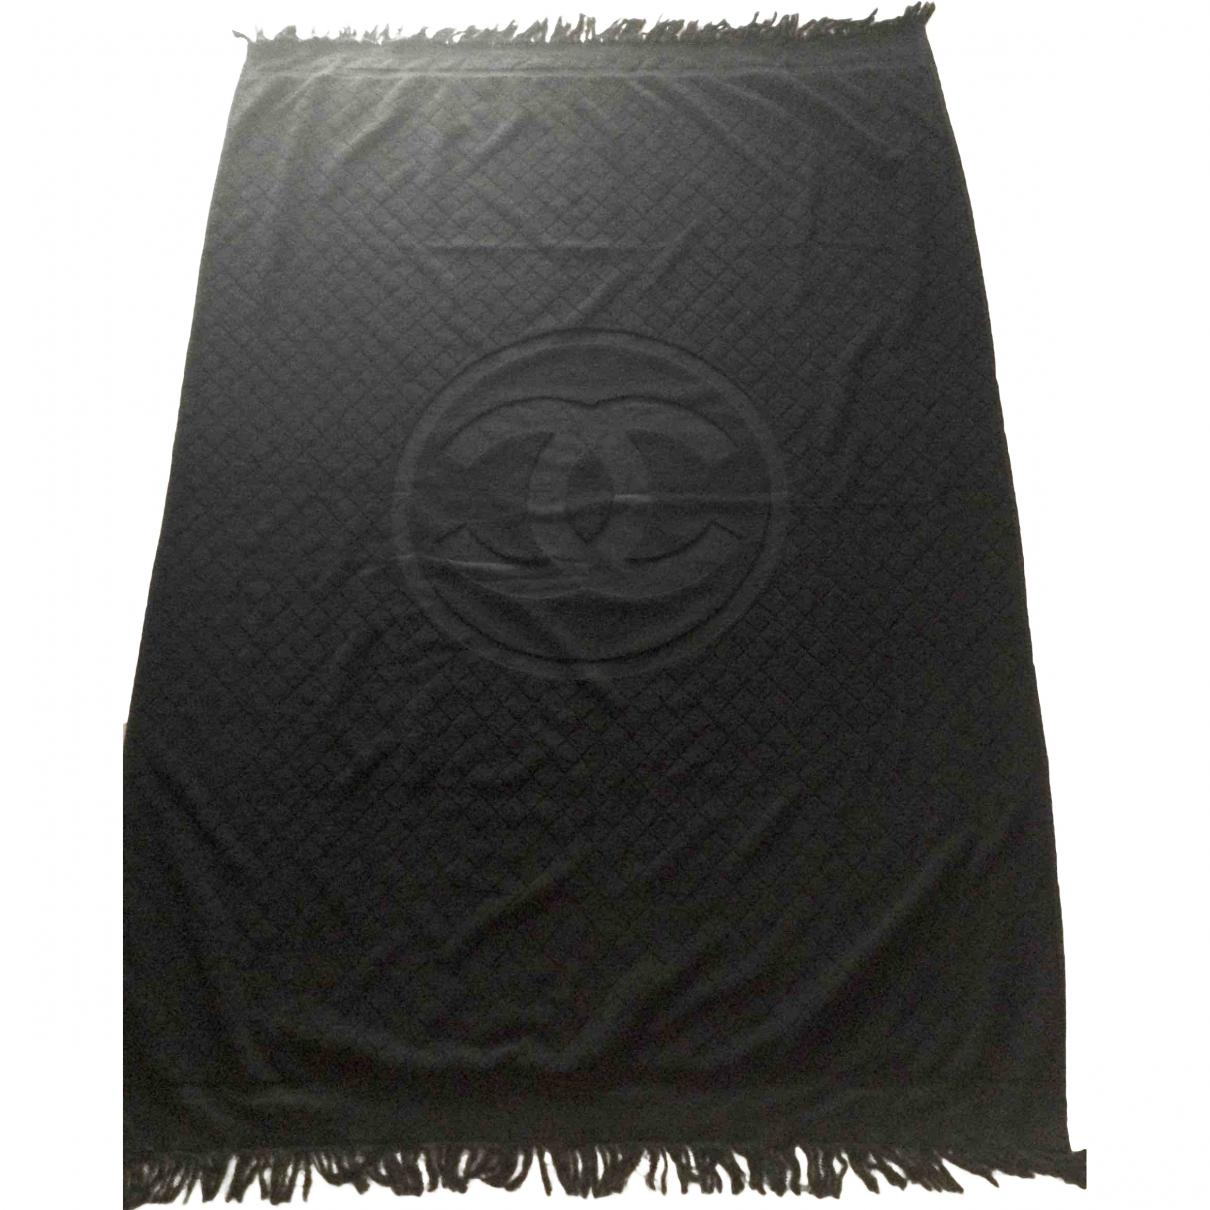 Chanel Towel: Chanel Pre-owned Bath Towel In Black